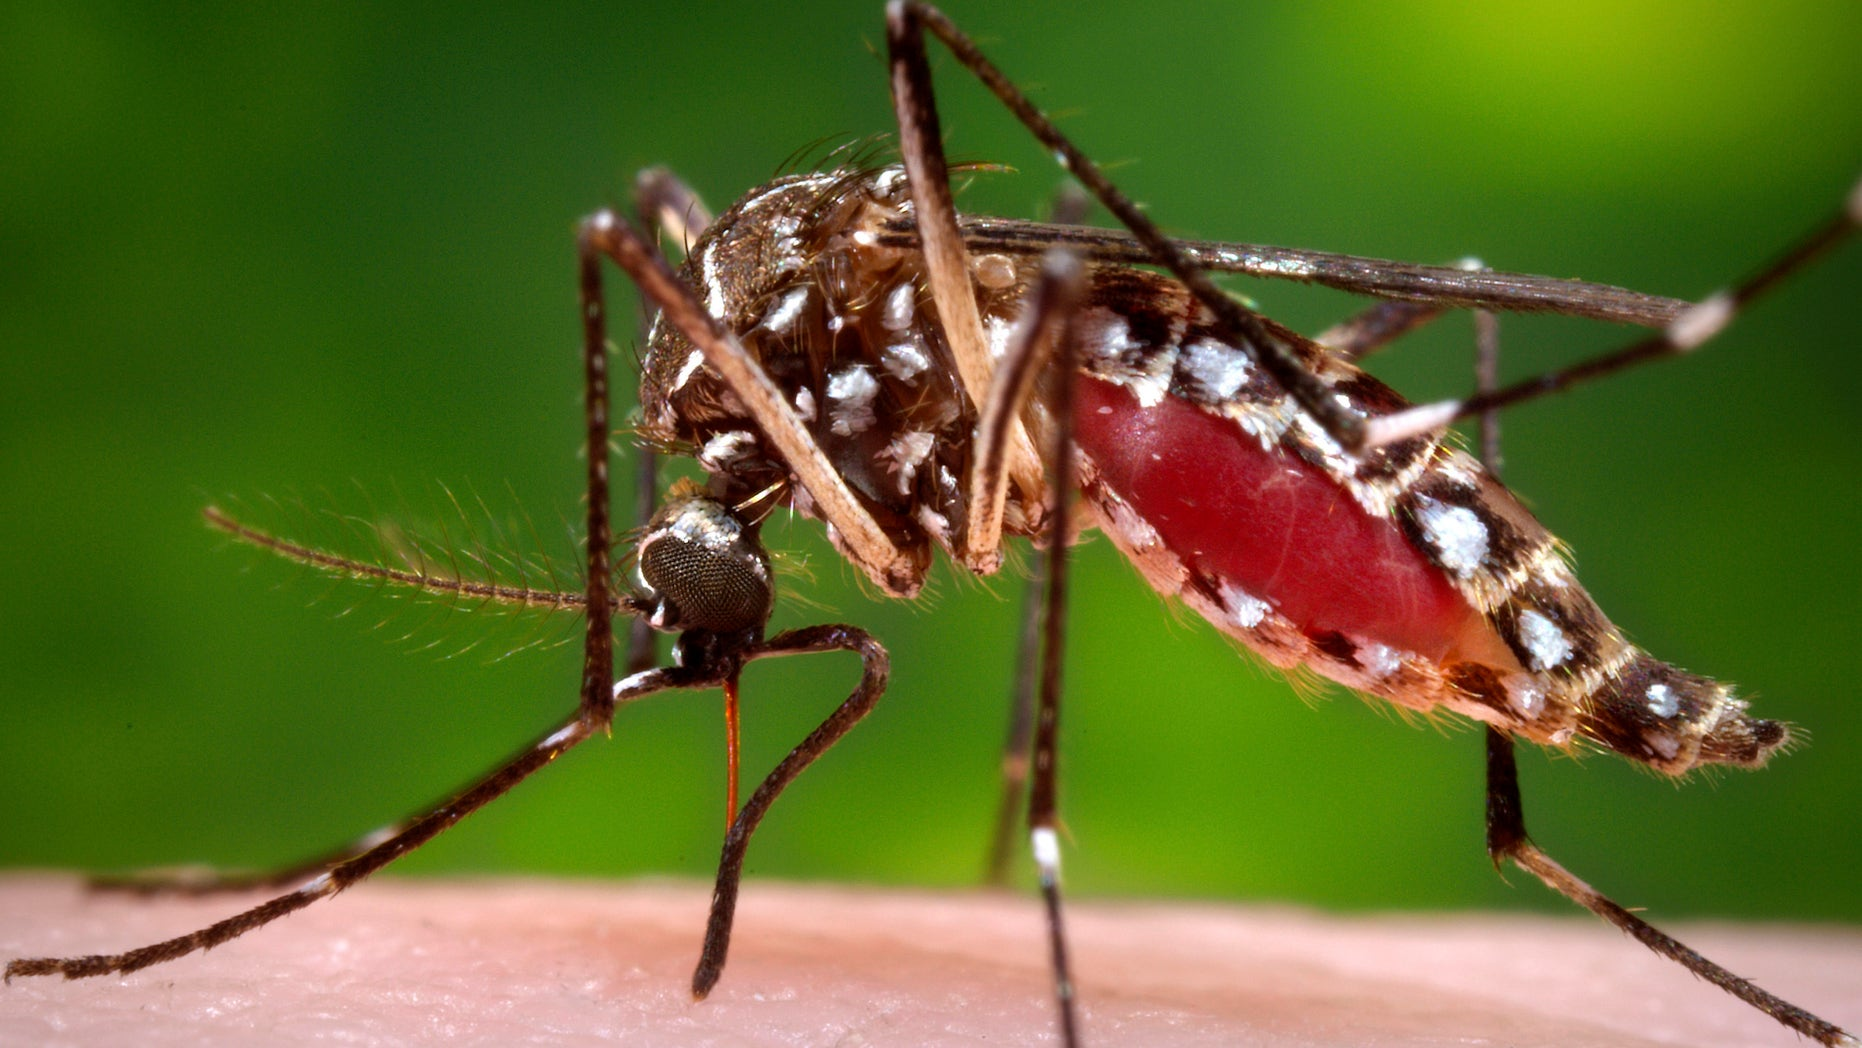 The Aedes aegypti  mosquito, shown here, is one type of mosquito capable of infecting people with dengue fever.  (REUTERS/James Gathany/CDC/Handout via Reuters)